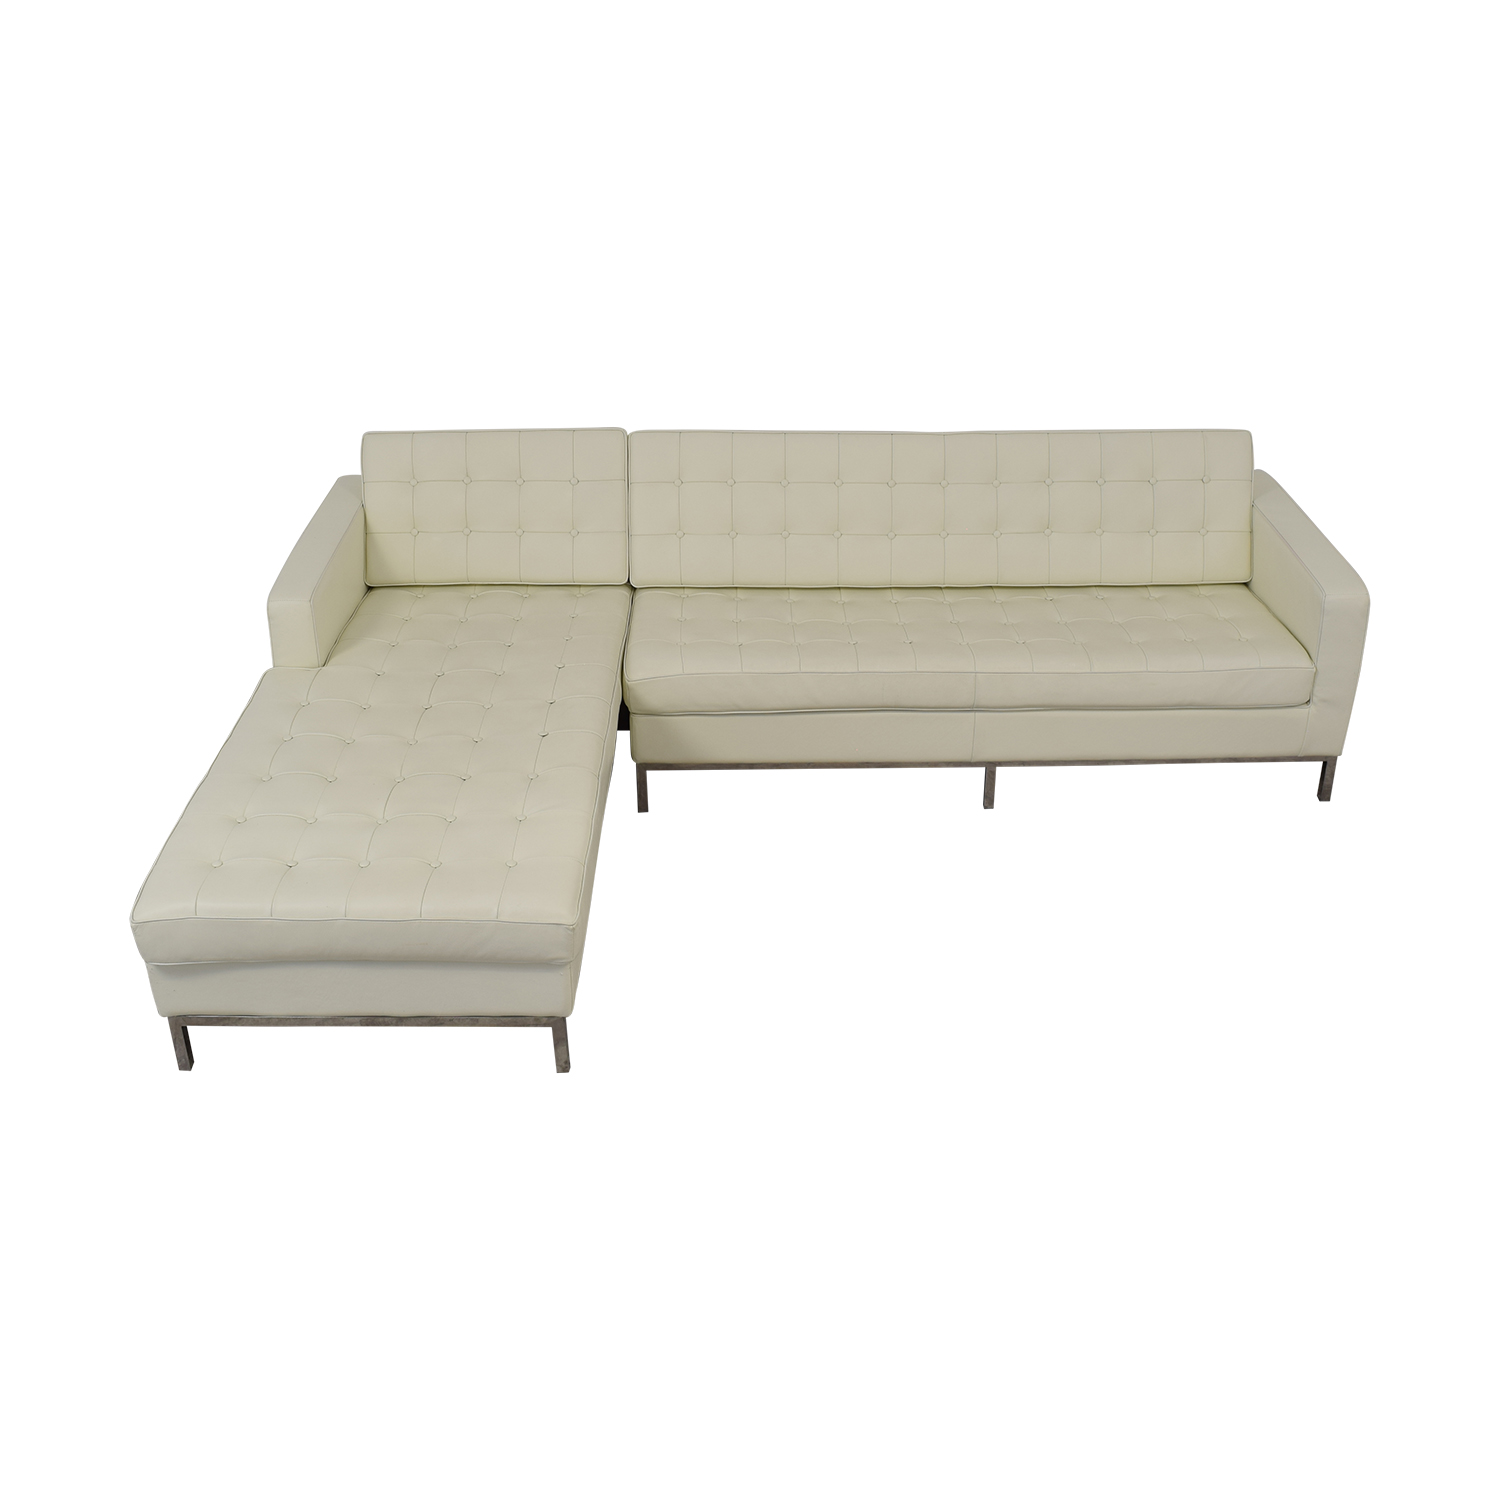 Prime 64 Off Kardiel Kardiel Florence Left Arm White Leather Sectional Sofas Camellatalisay Diy Chair Ideas Camellatalisaycom